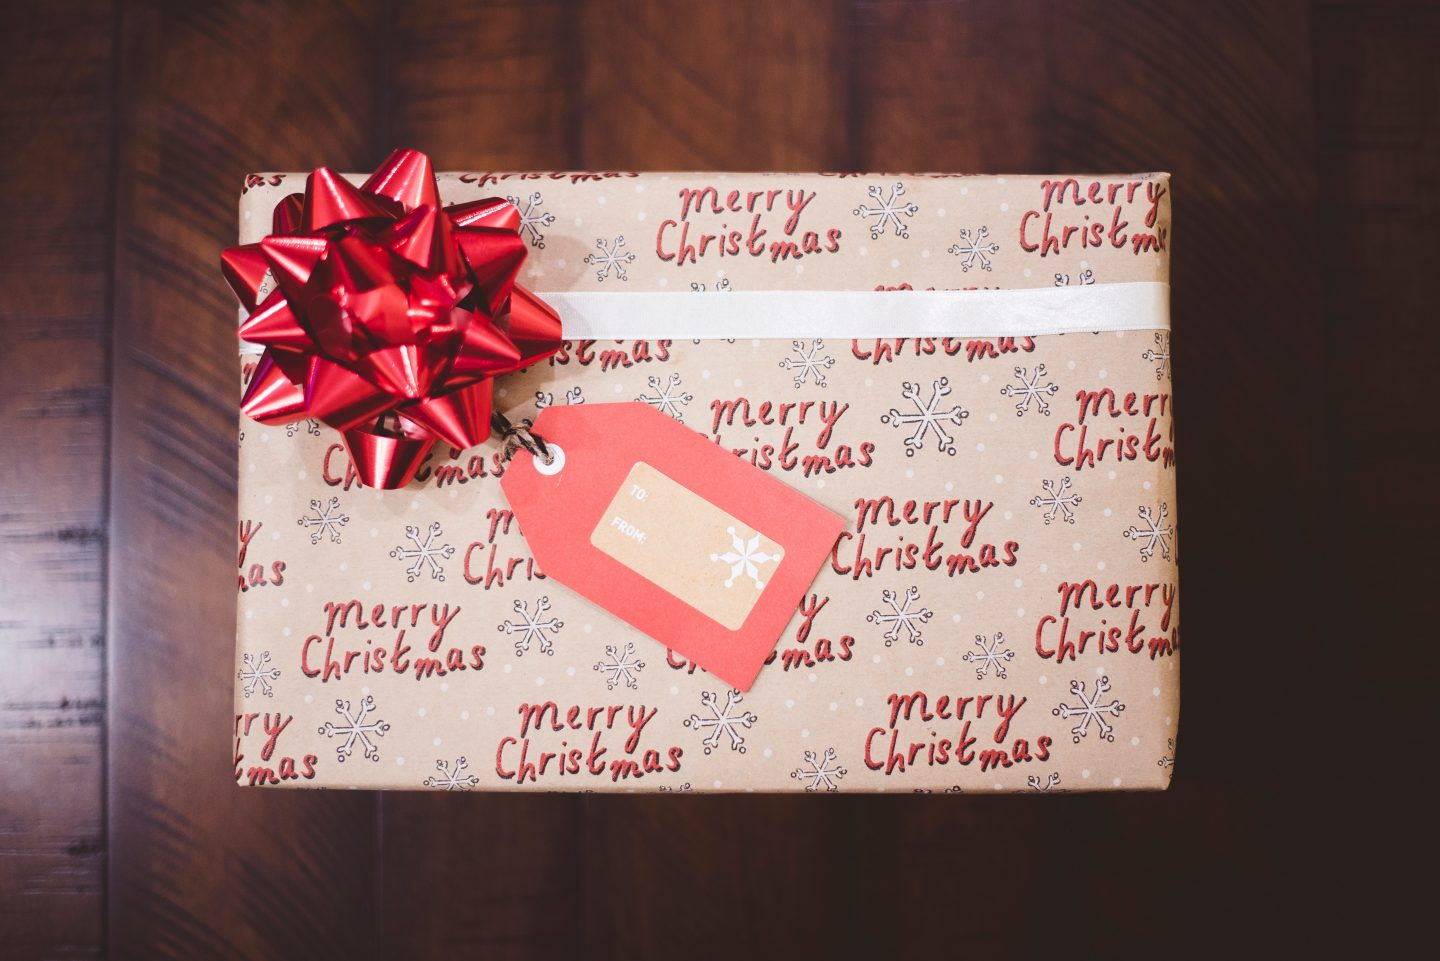 A picture of a Christmas Present